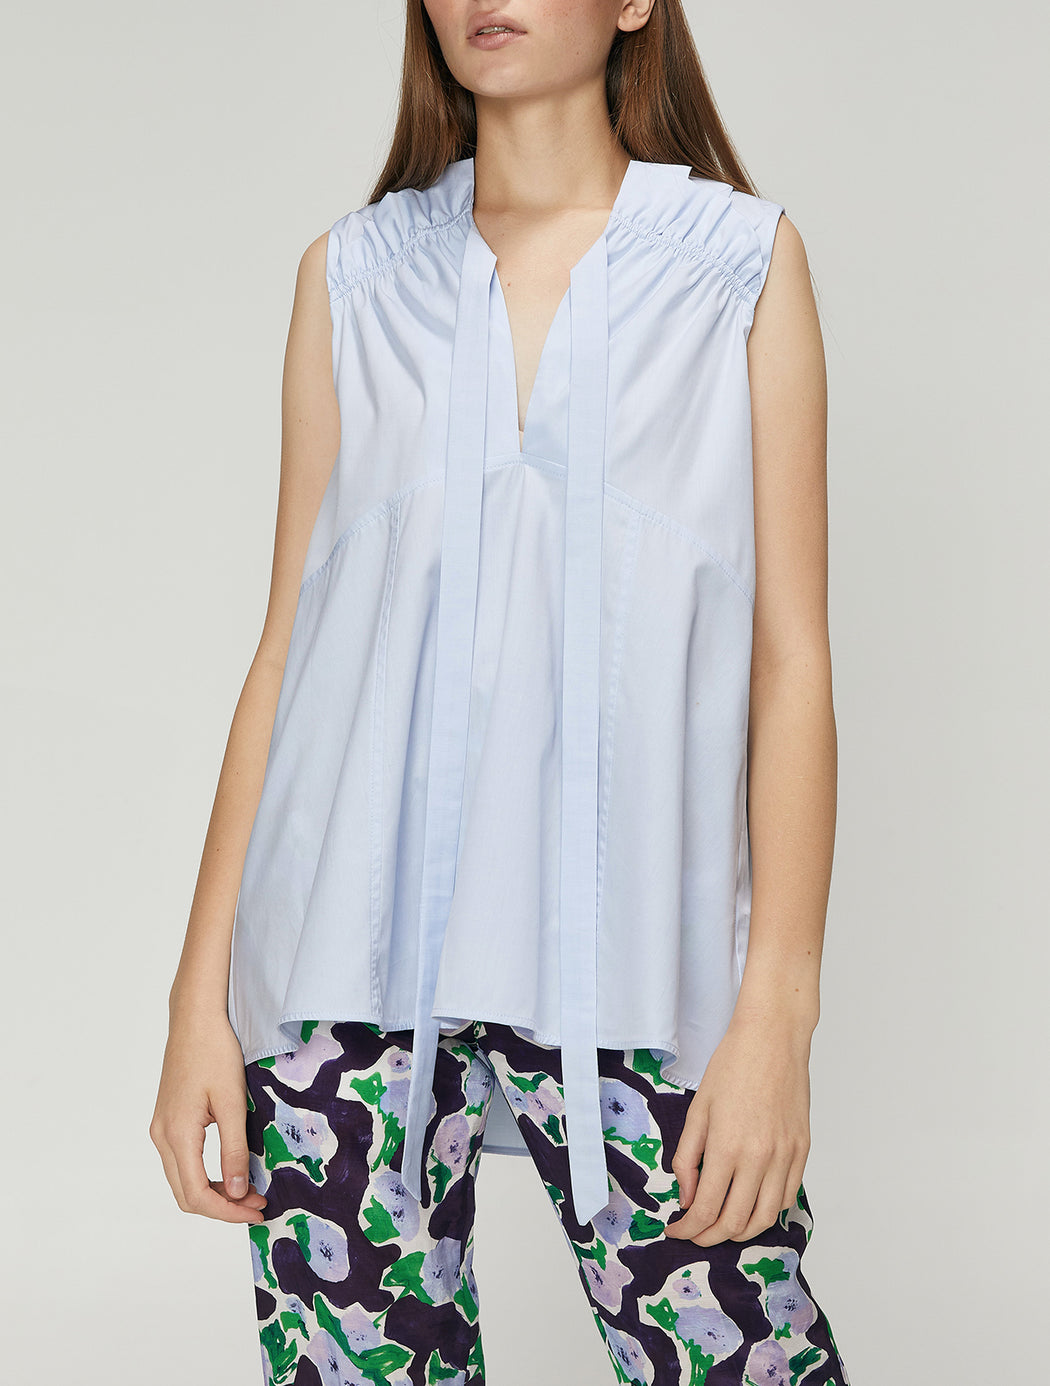 Turan Sleeveless Gathered Top - Light Blue